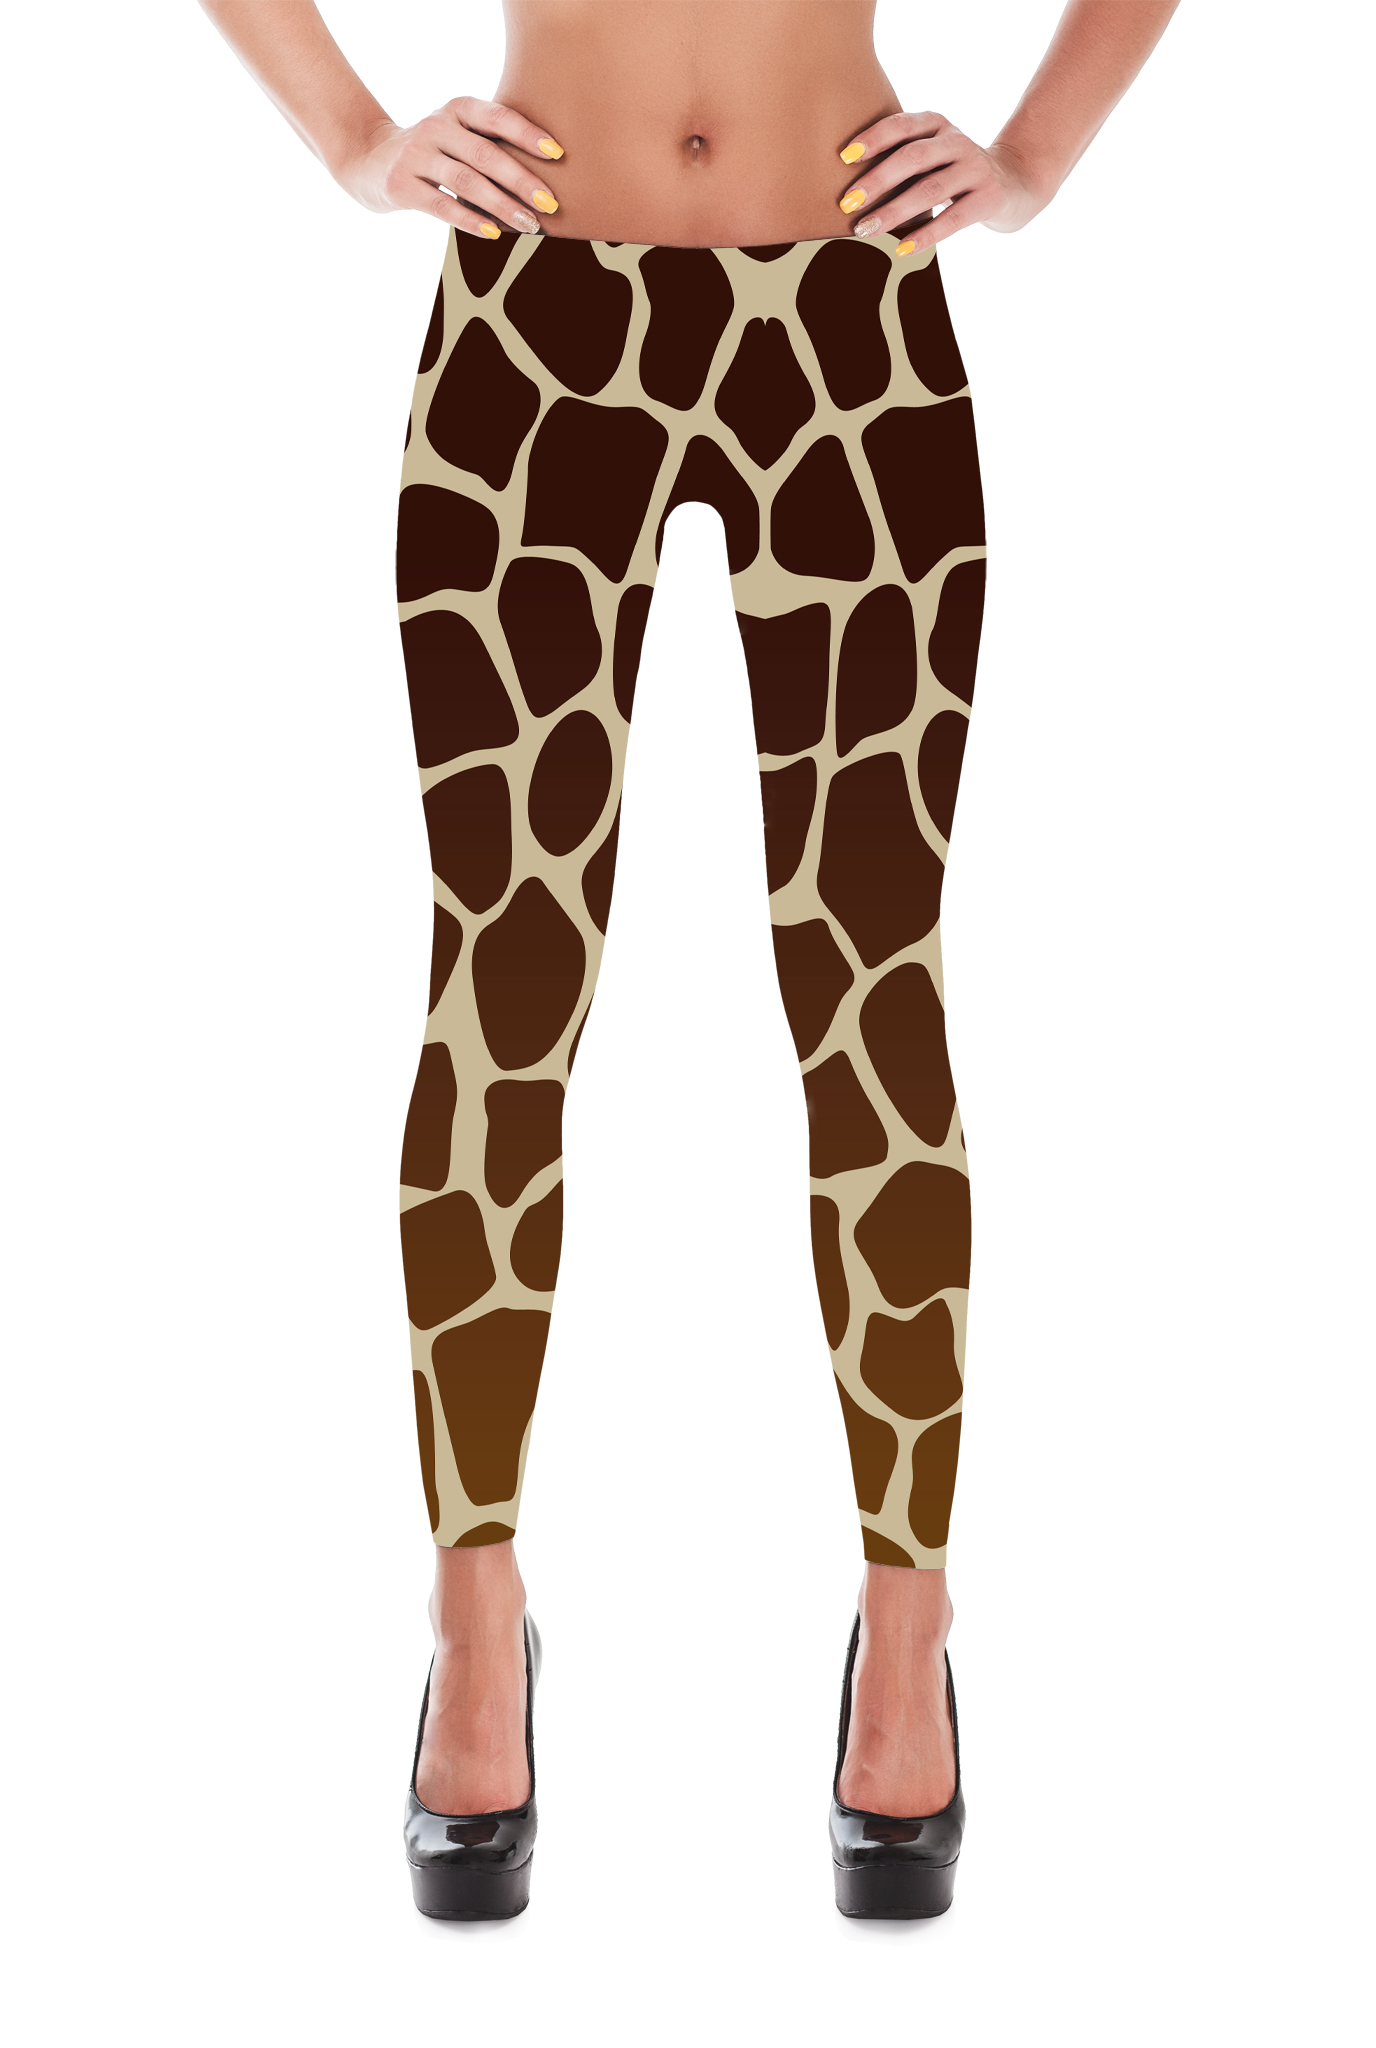 af1a36cae0e95 Giraffe pattern leggings for your next costume party or just to wear  around. Check out our matching Giraffe Bra Top and Giraffe Dress.